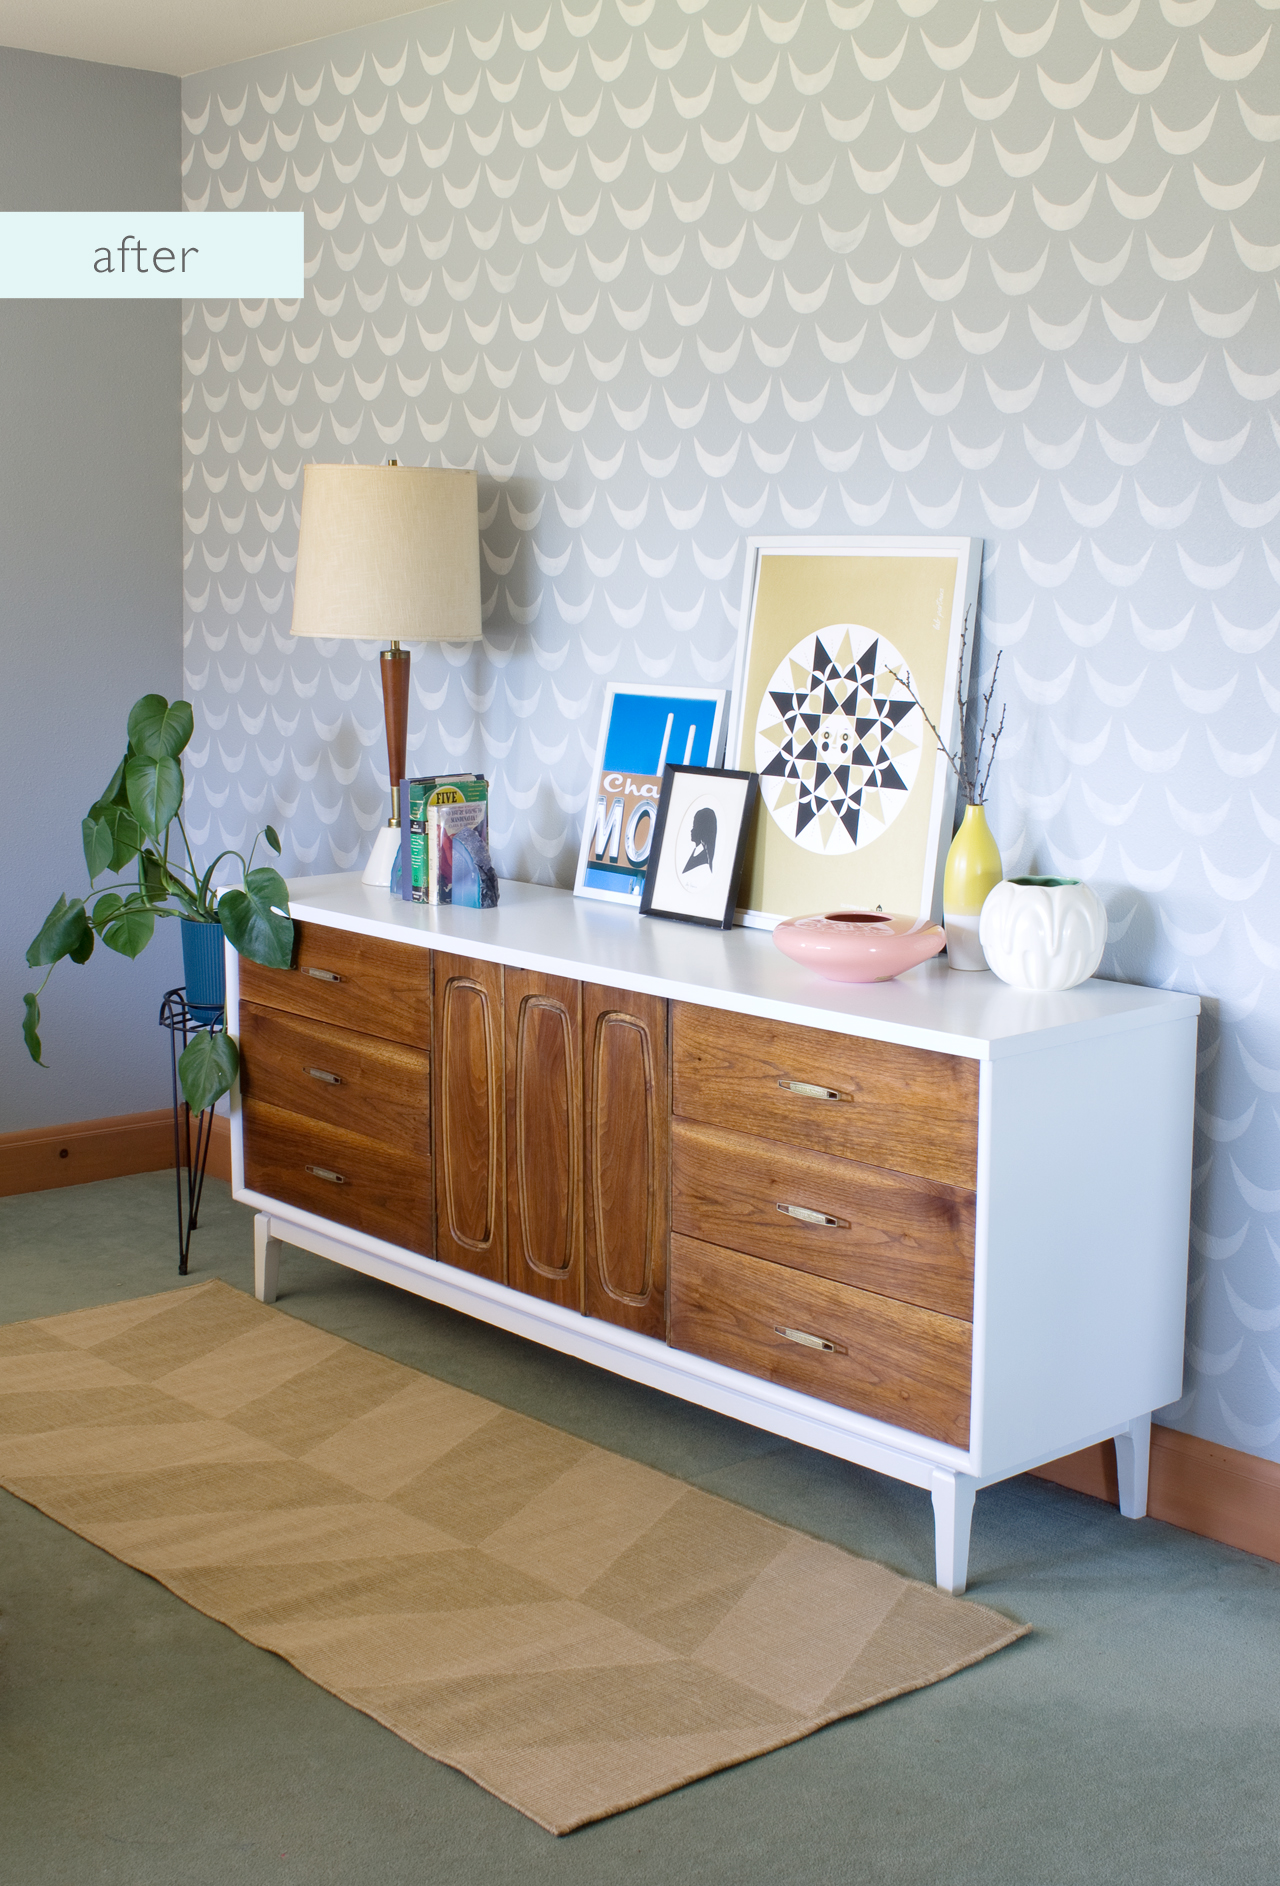 Mid Century Dresser Makeover - After